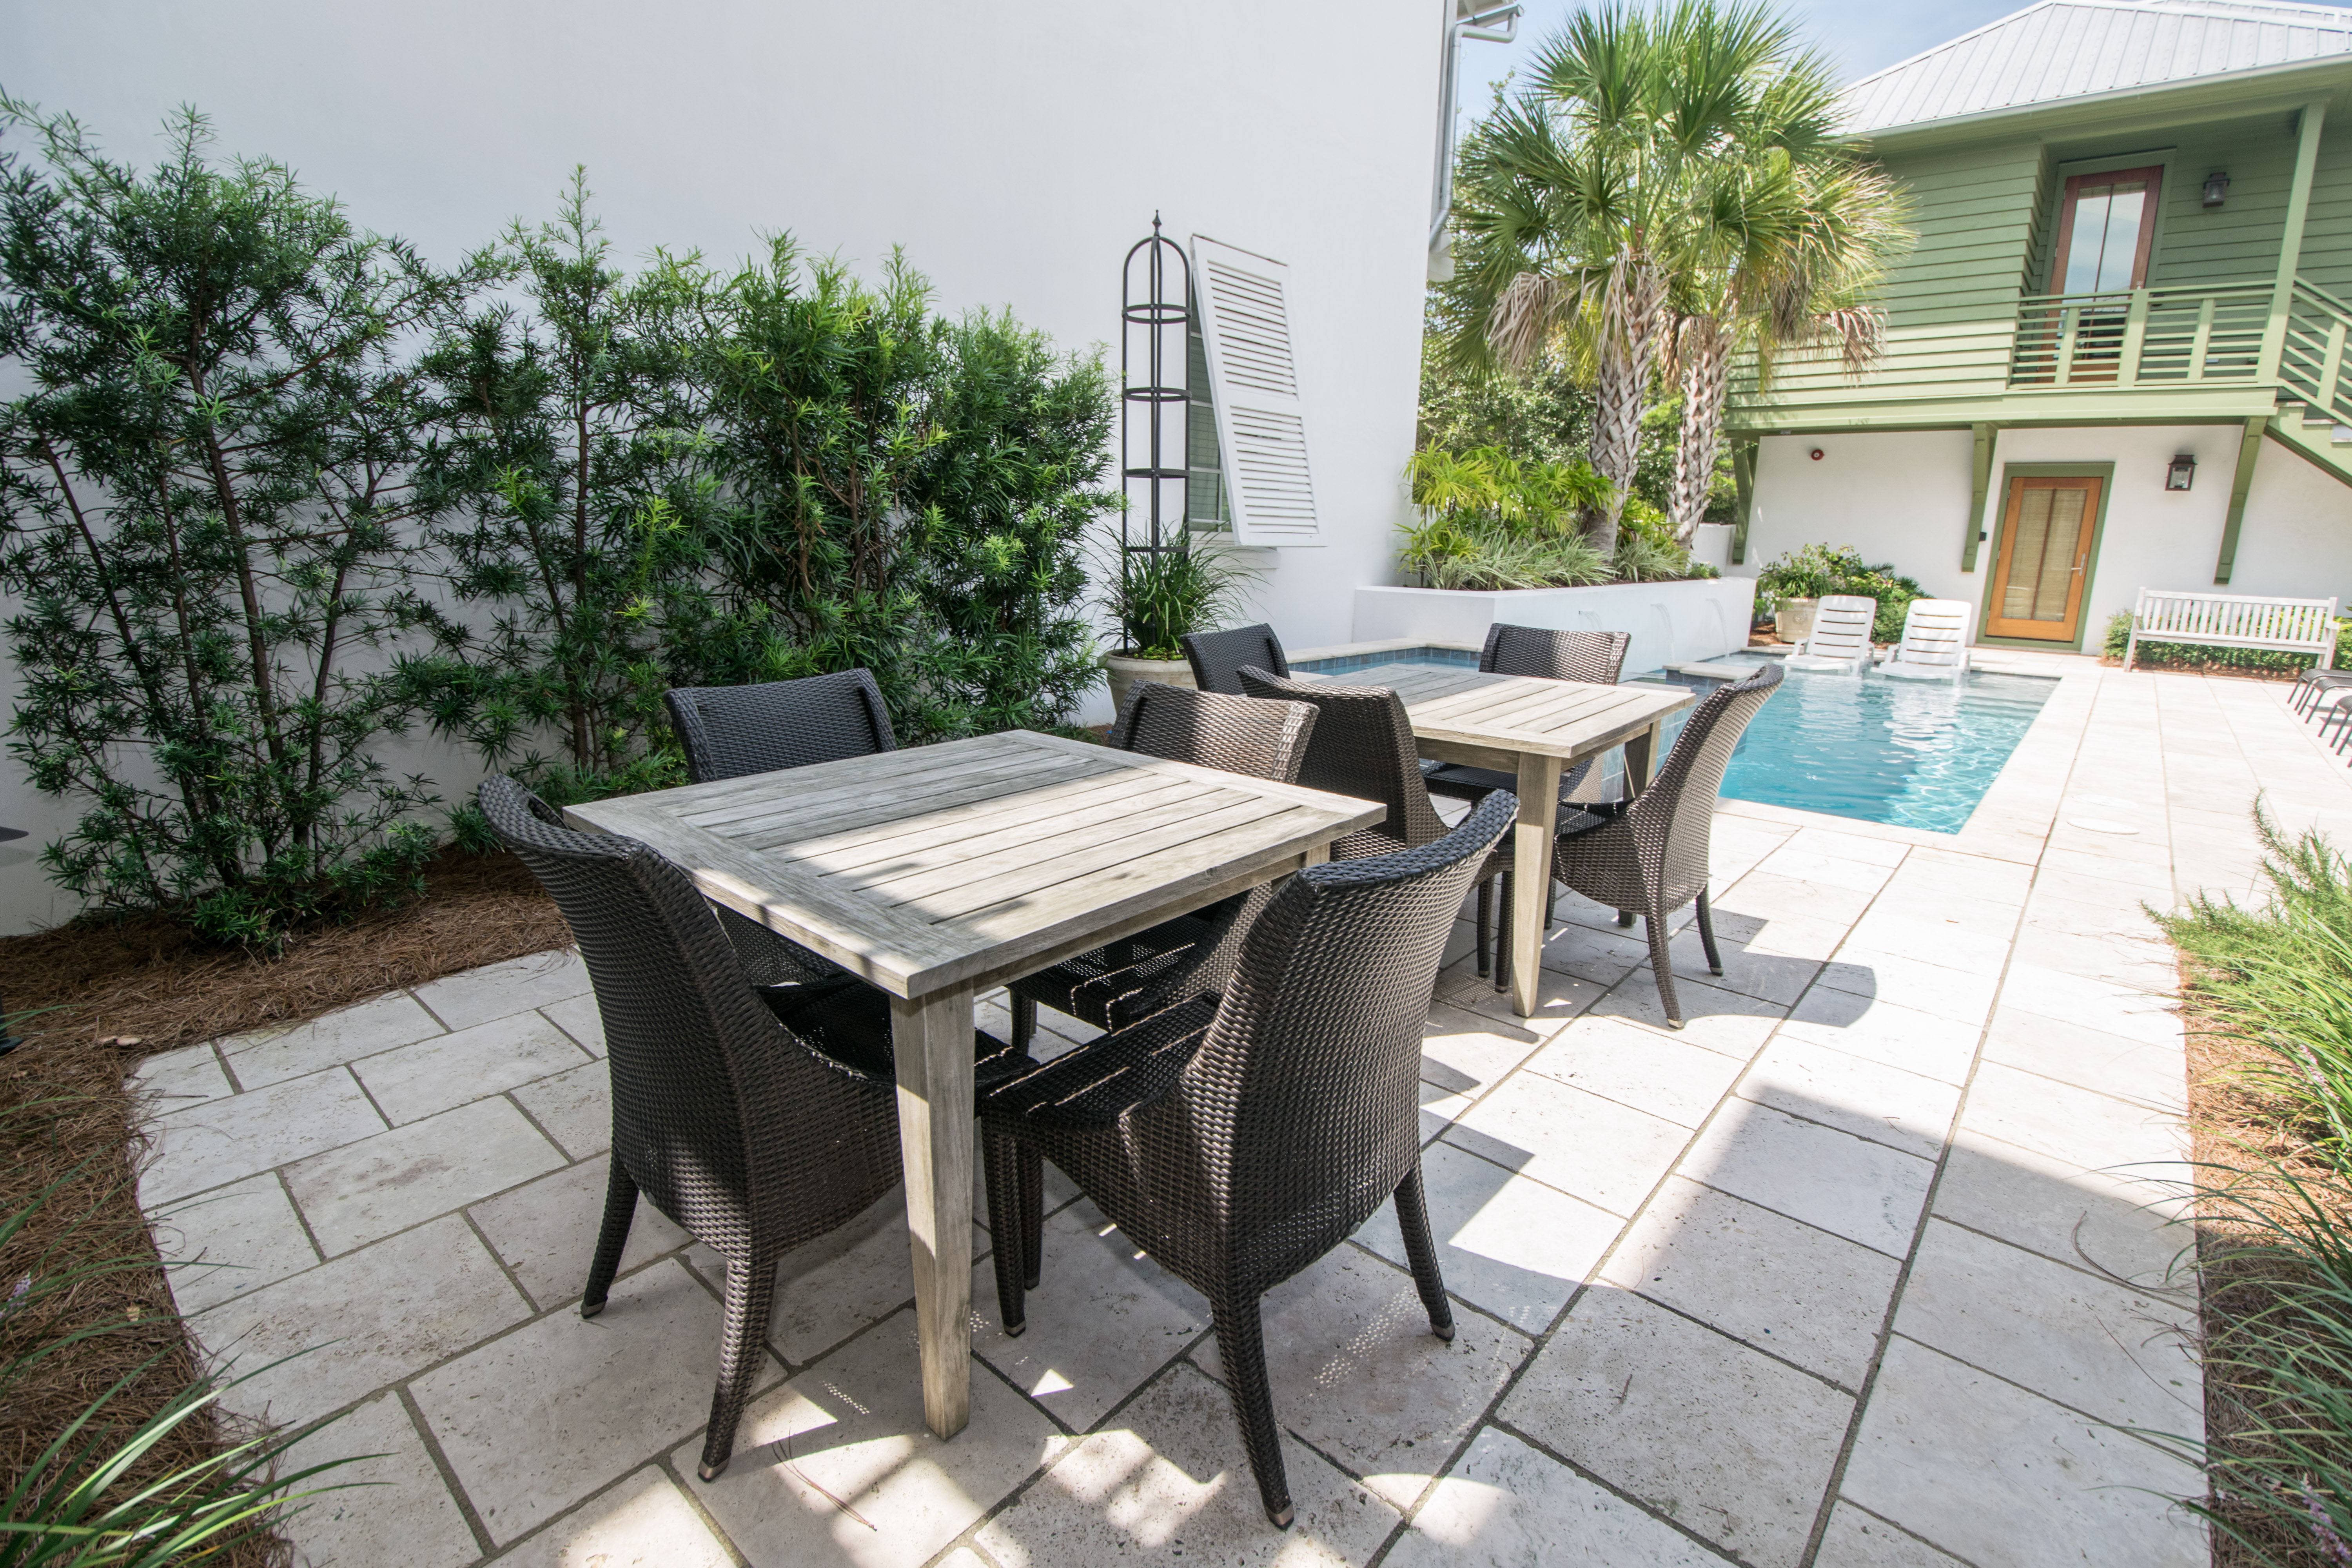 Outside dining by the pool for up to 8 people